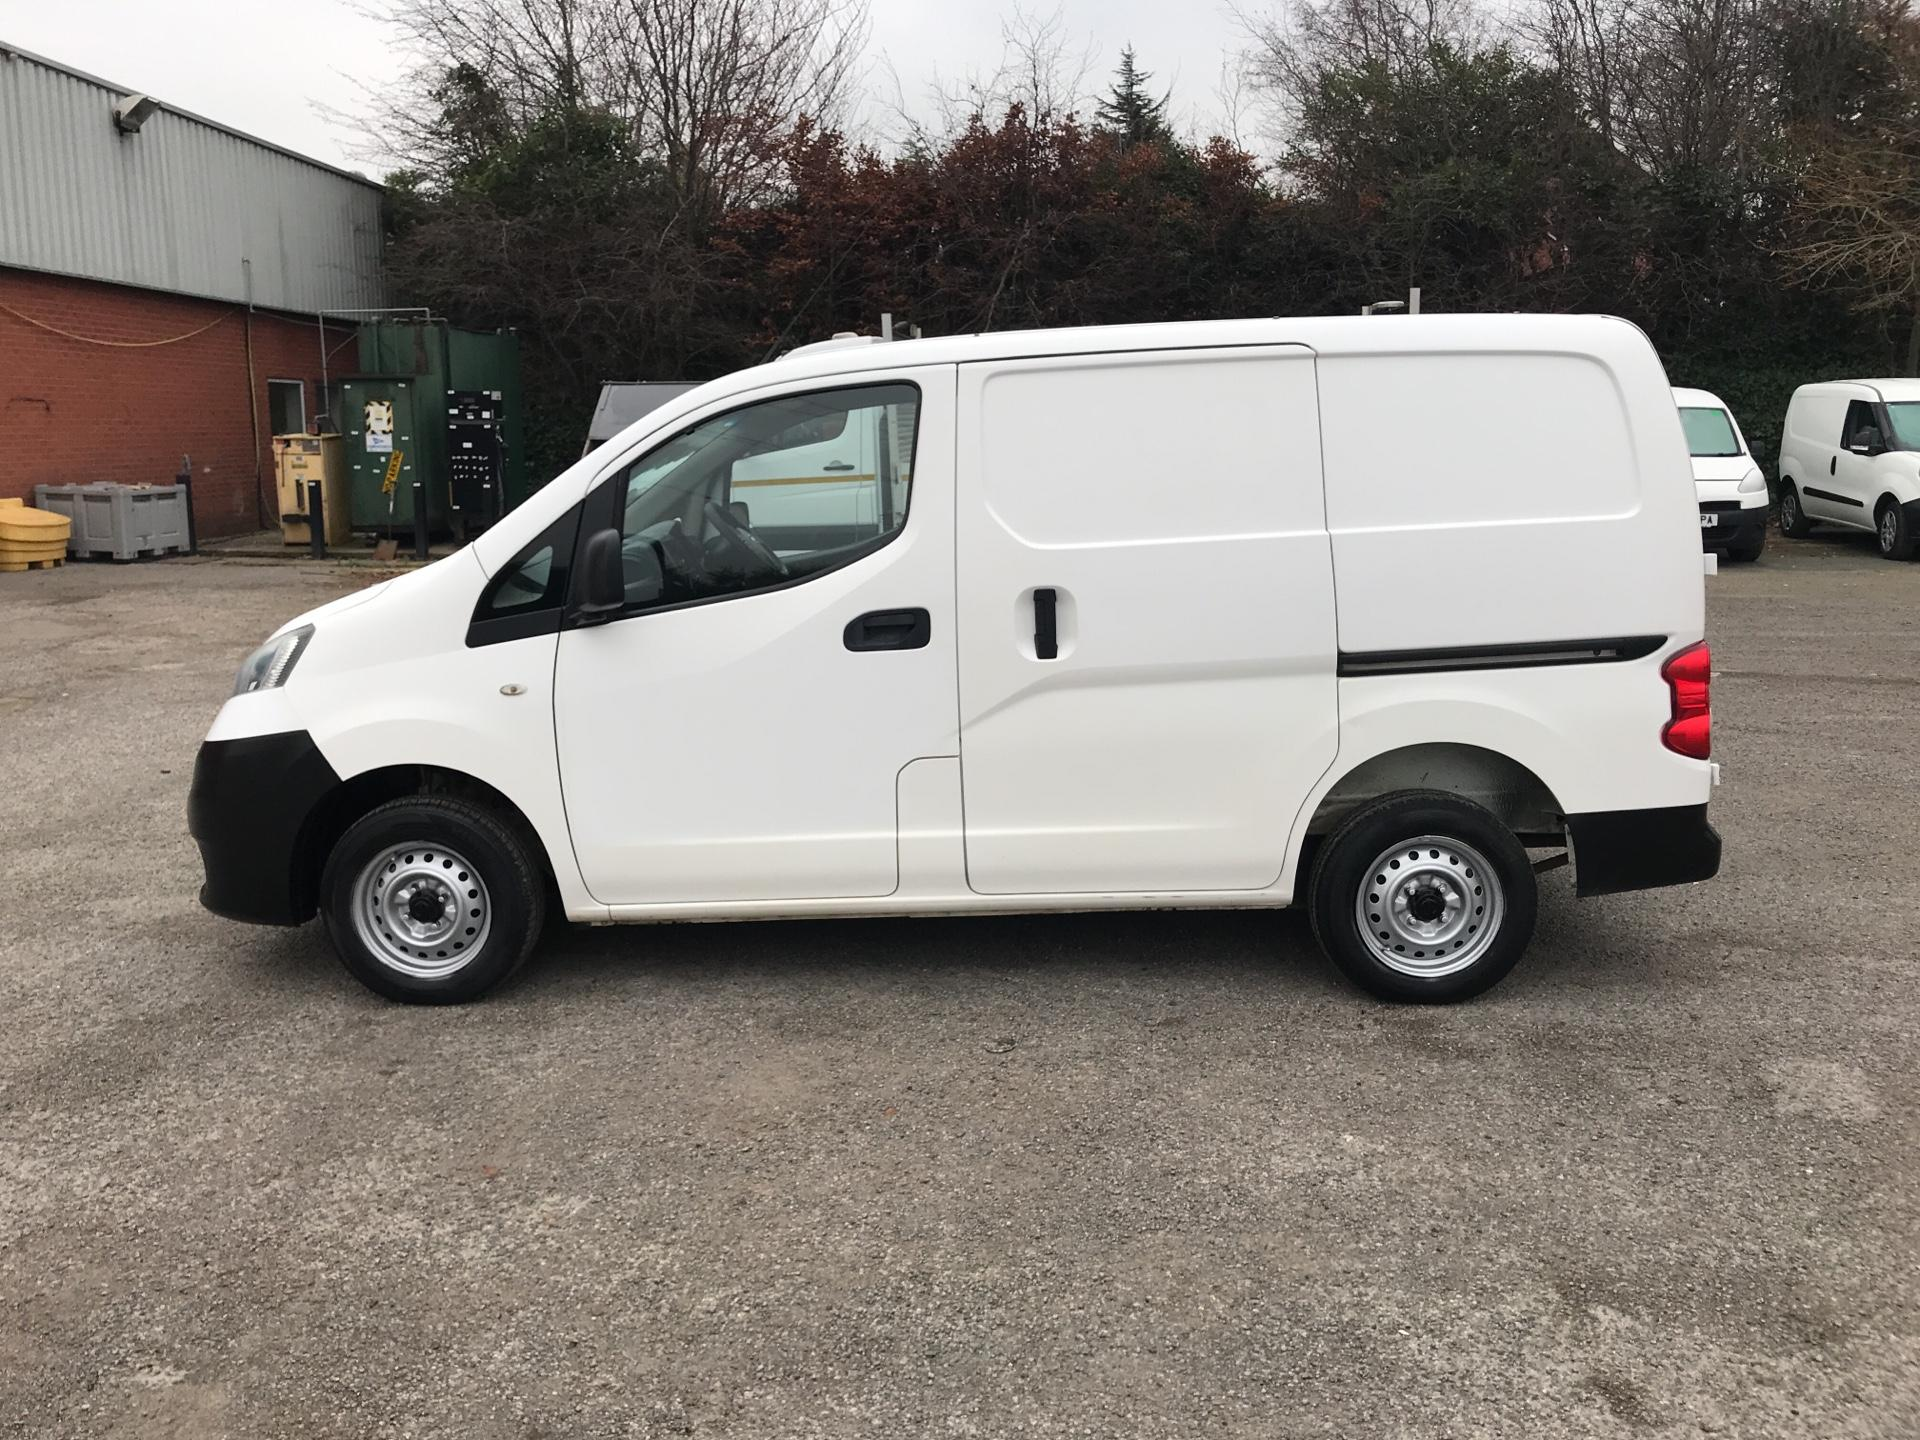 2012 Nissan Nv200 1.5 Dci 89 Se Van EURO 5 -*VALUE RANGE VEHICLE - CONDITION REFLECTED IN PRICE* (SA62MVR) Image 6